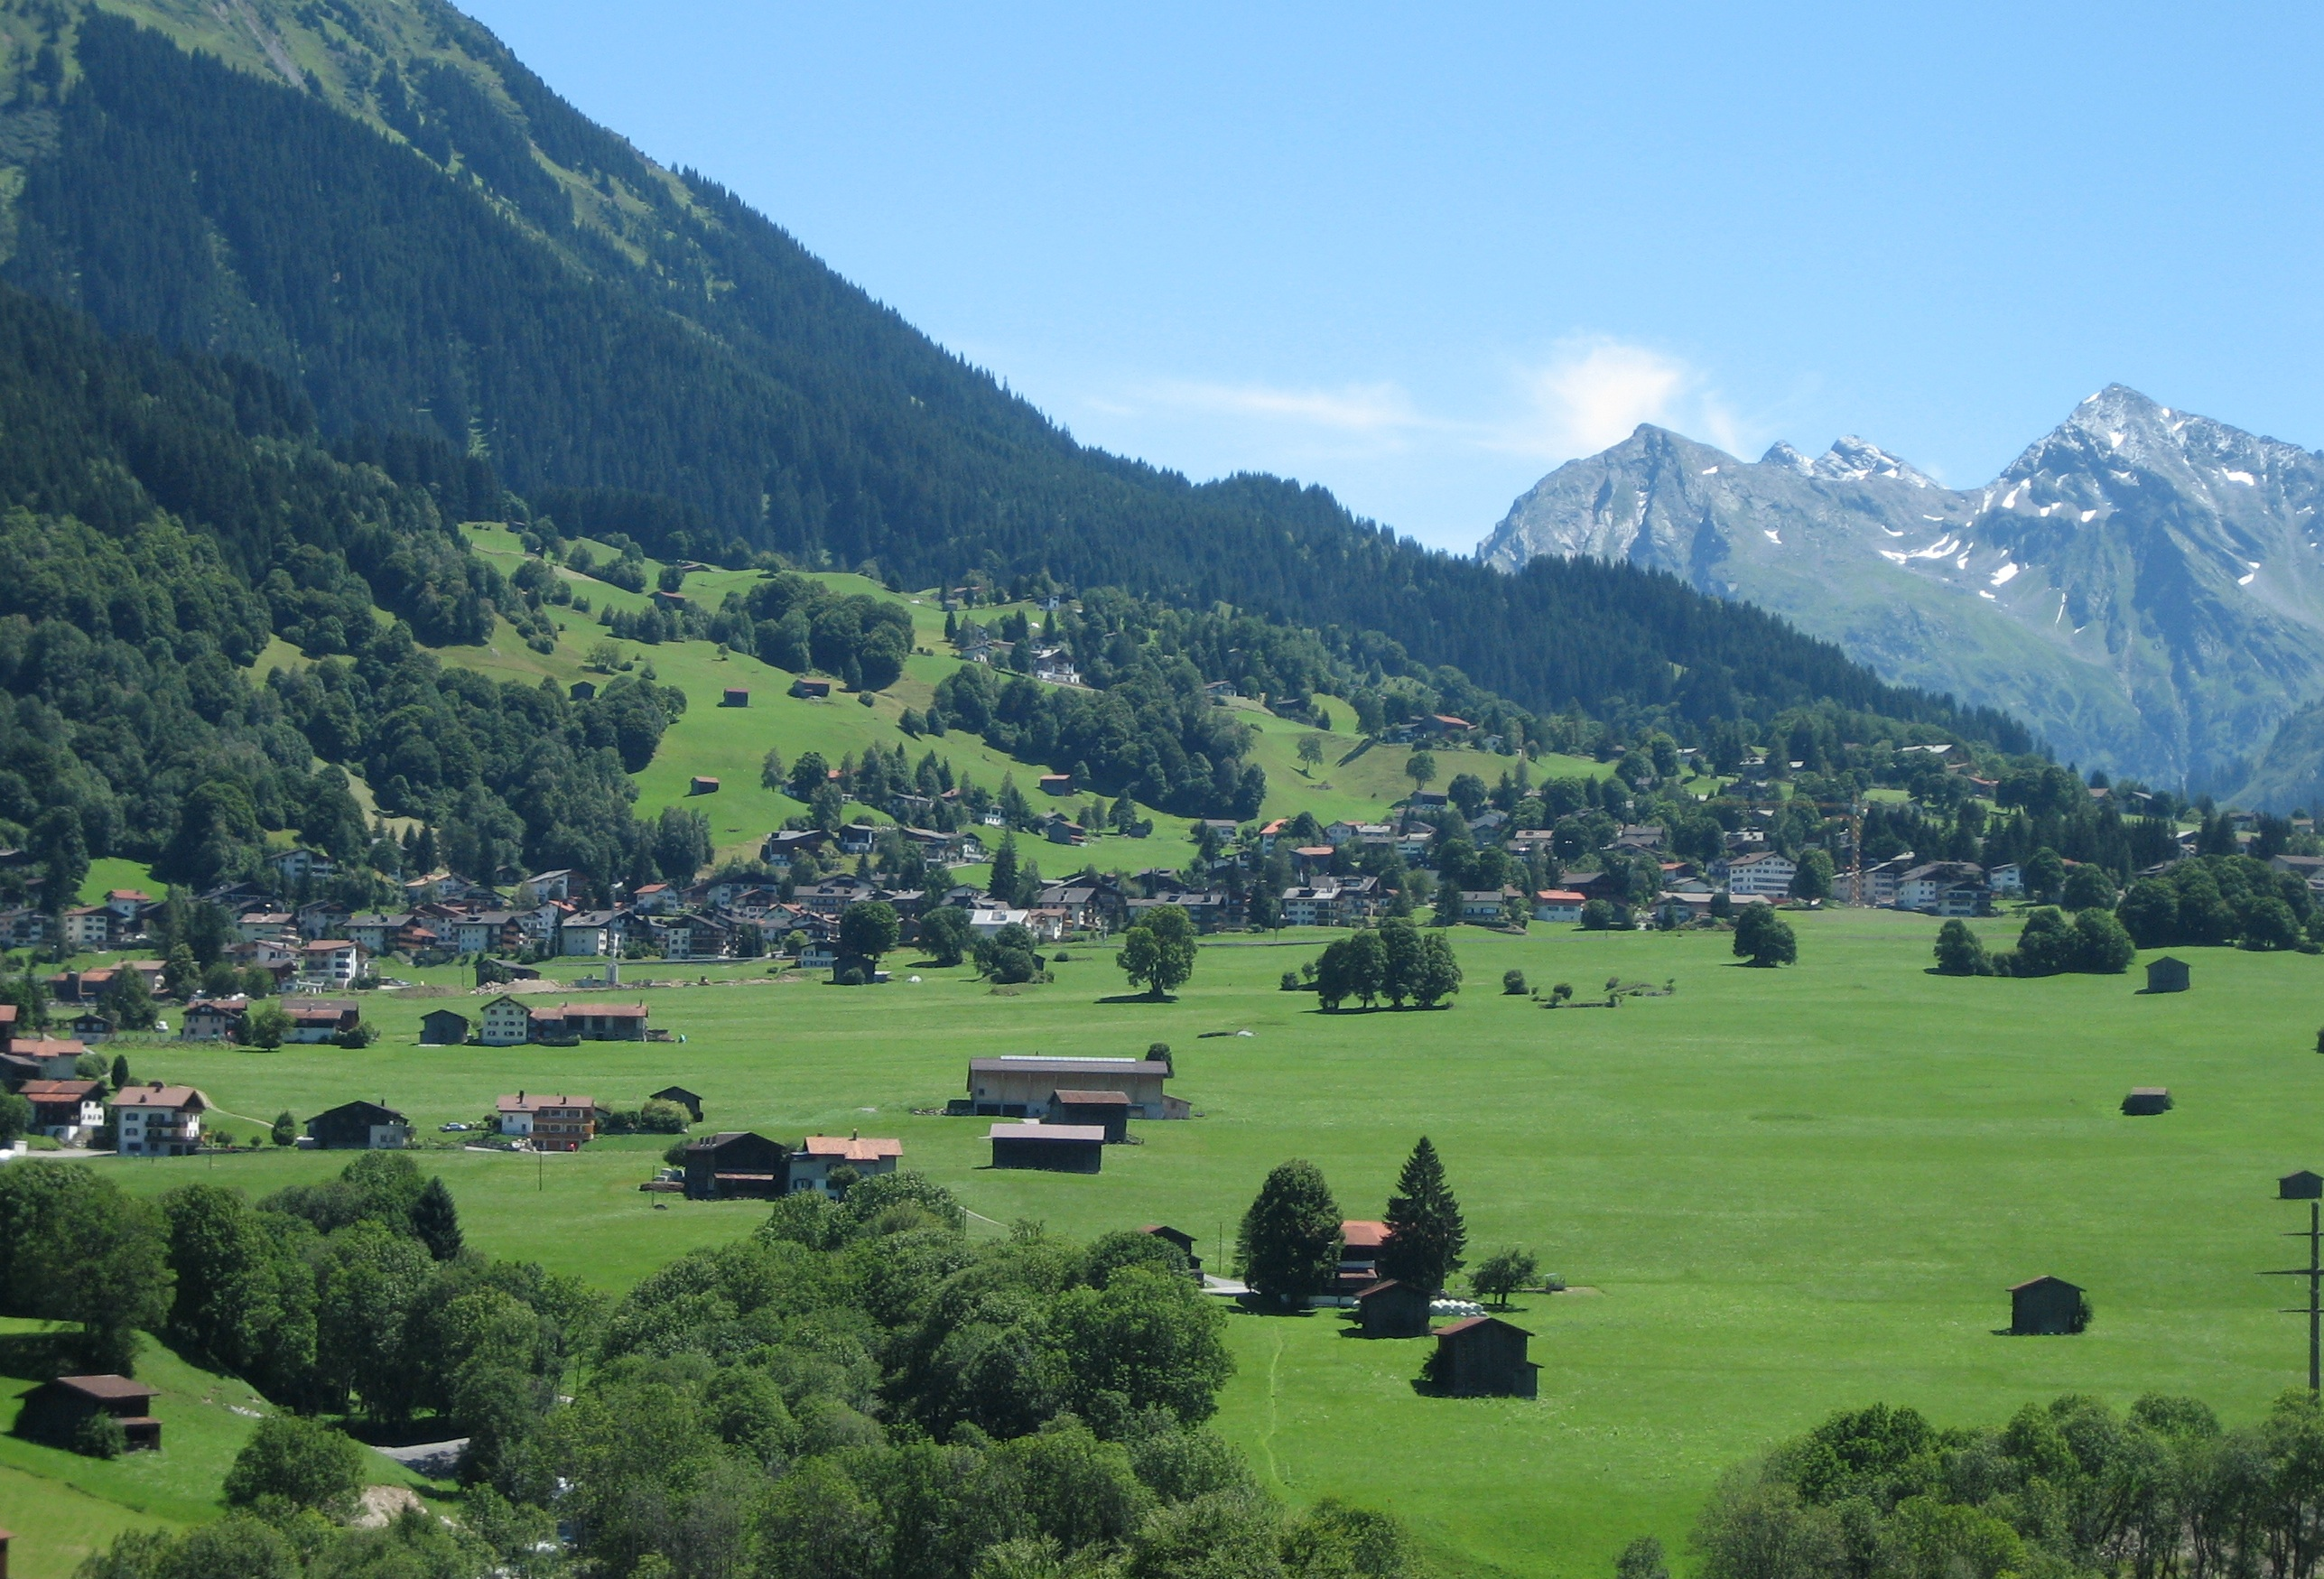 Klosters Switzerland  city photos gallery : Klosters Dorf Wikipedia, the free encyclopedia